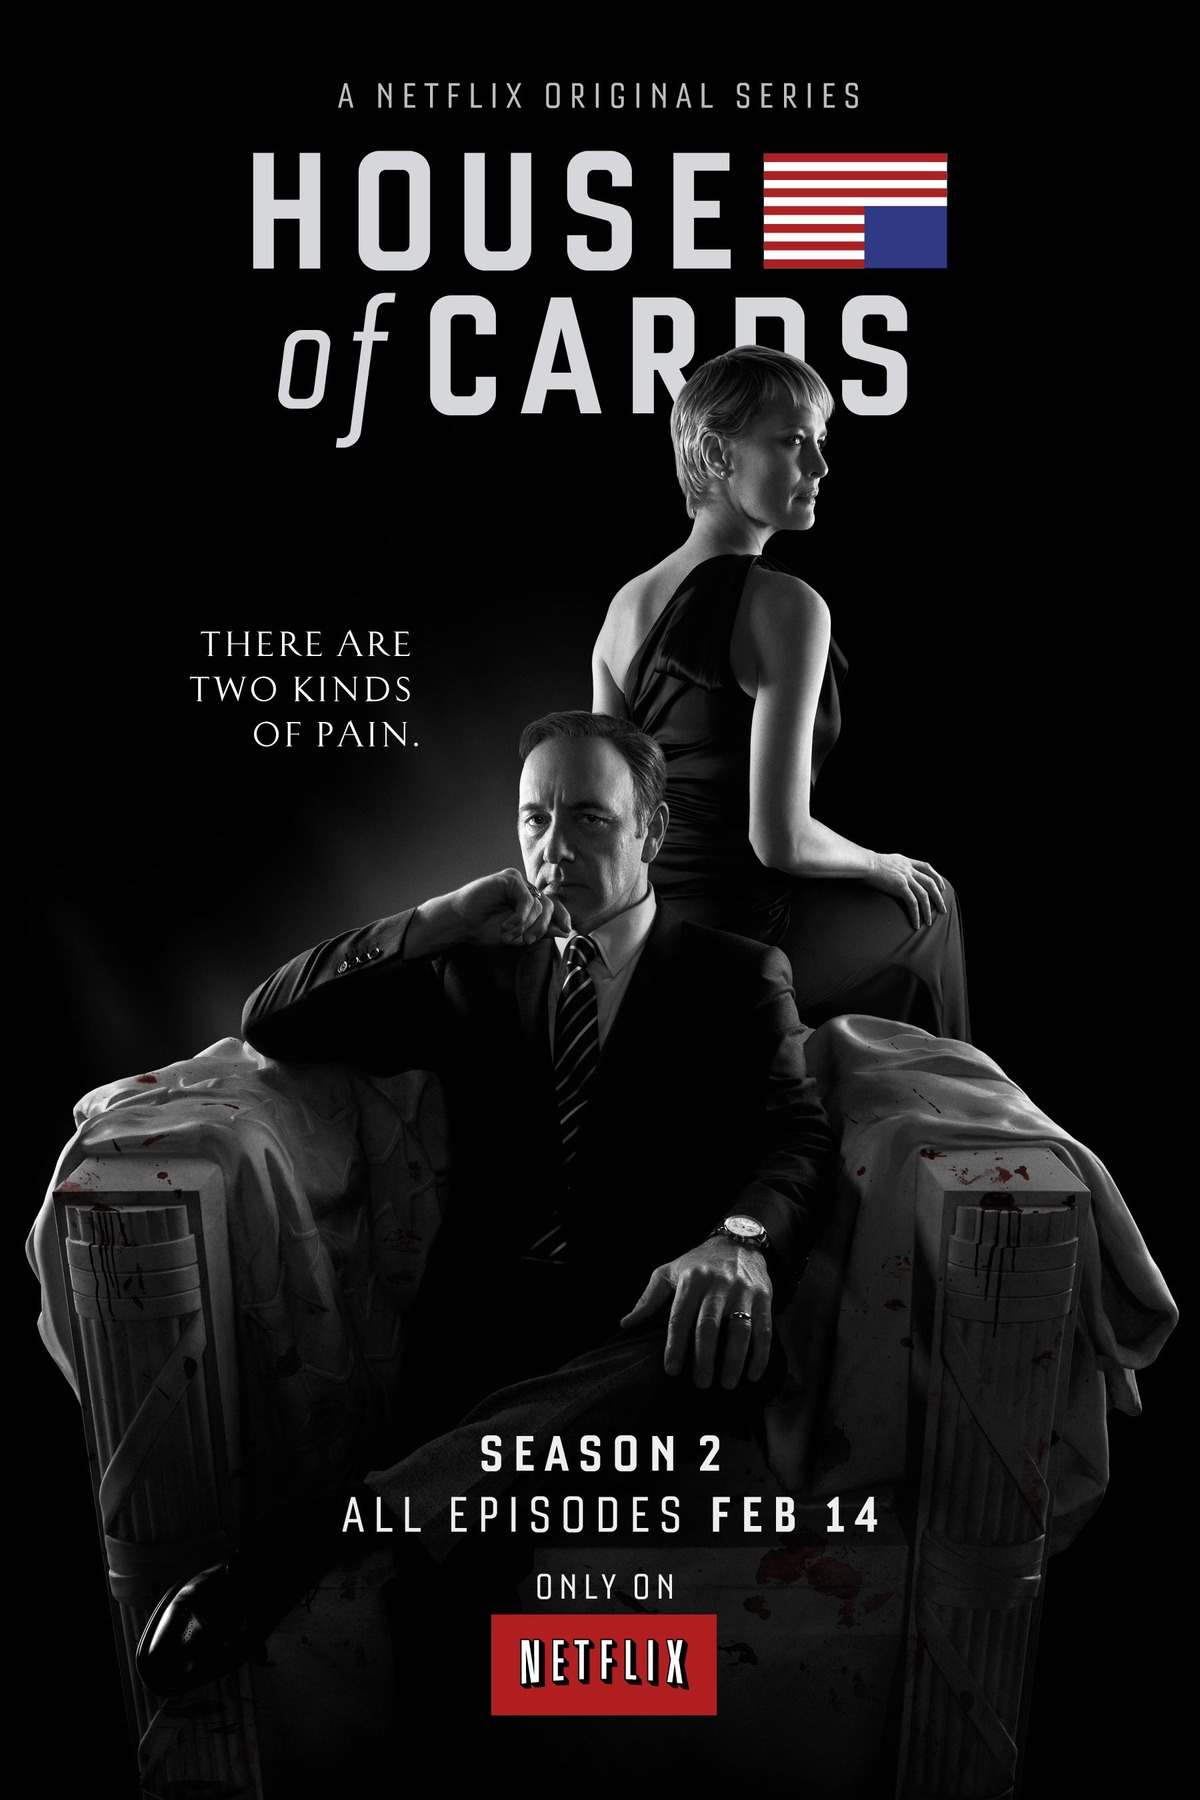 http://myscreens.fr/wp-content/uploads/2014/03/House-of-Cards-Season-2-Poster.jpg.jpg